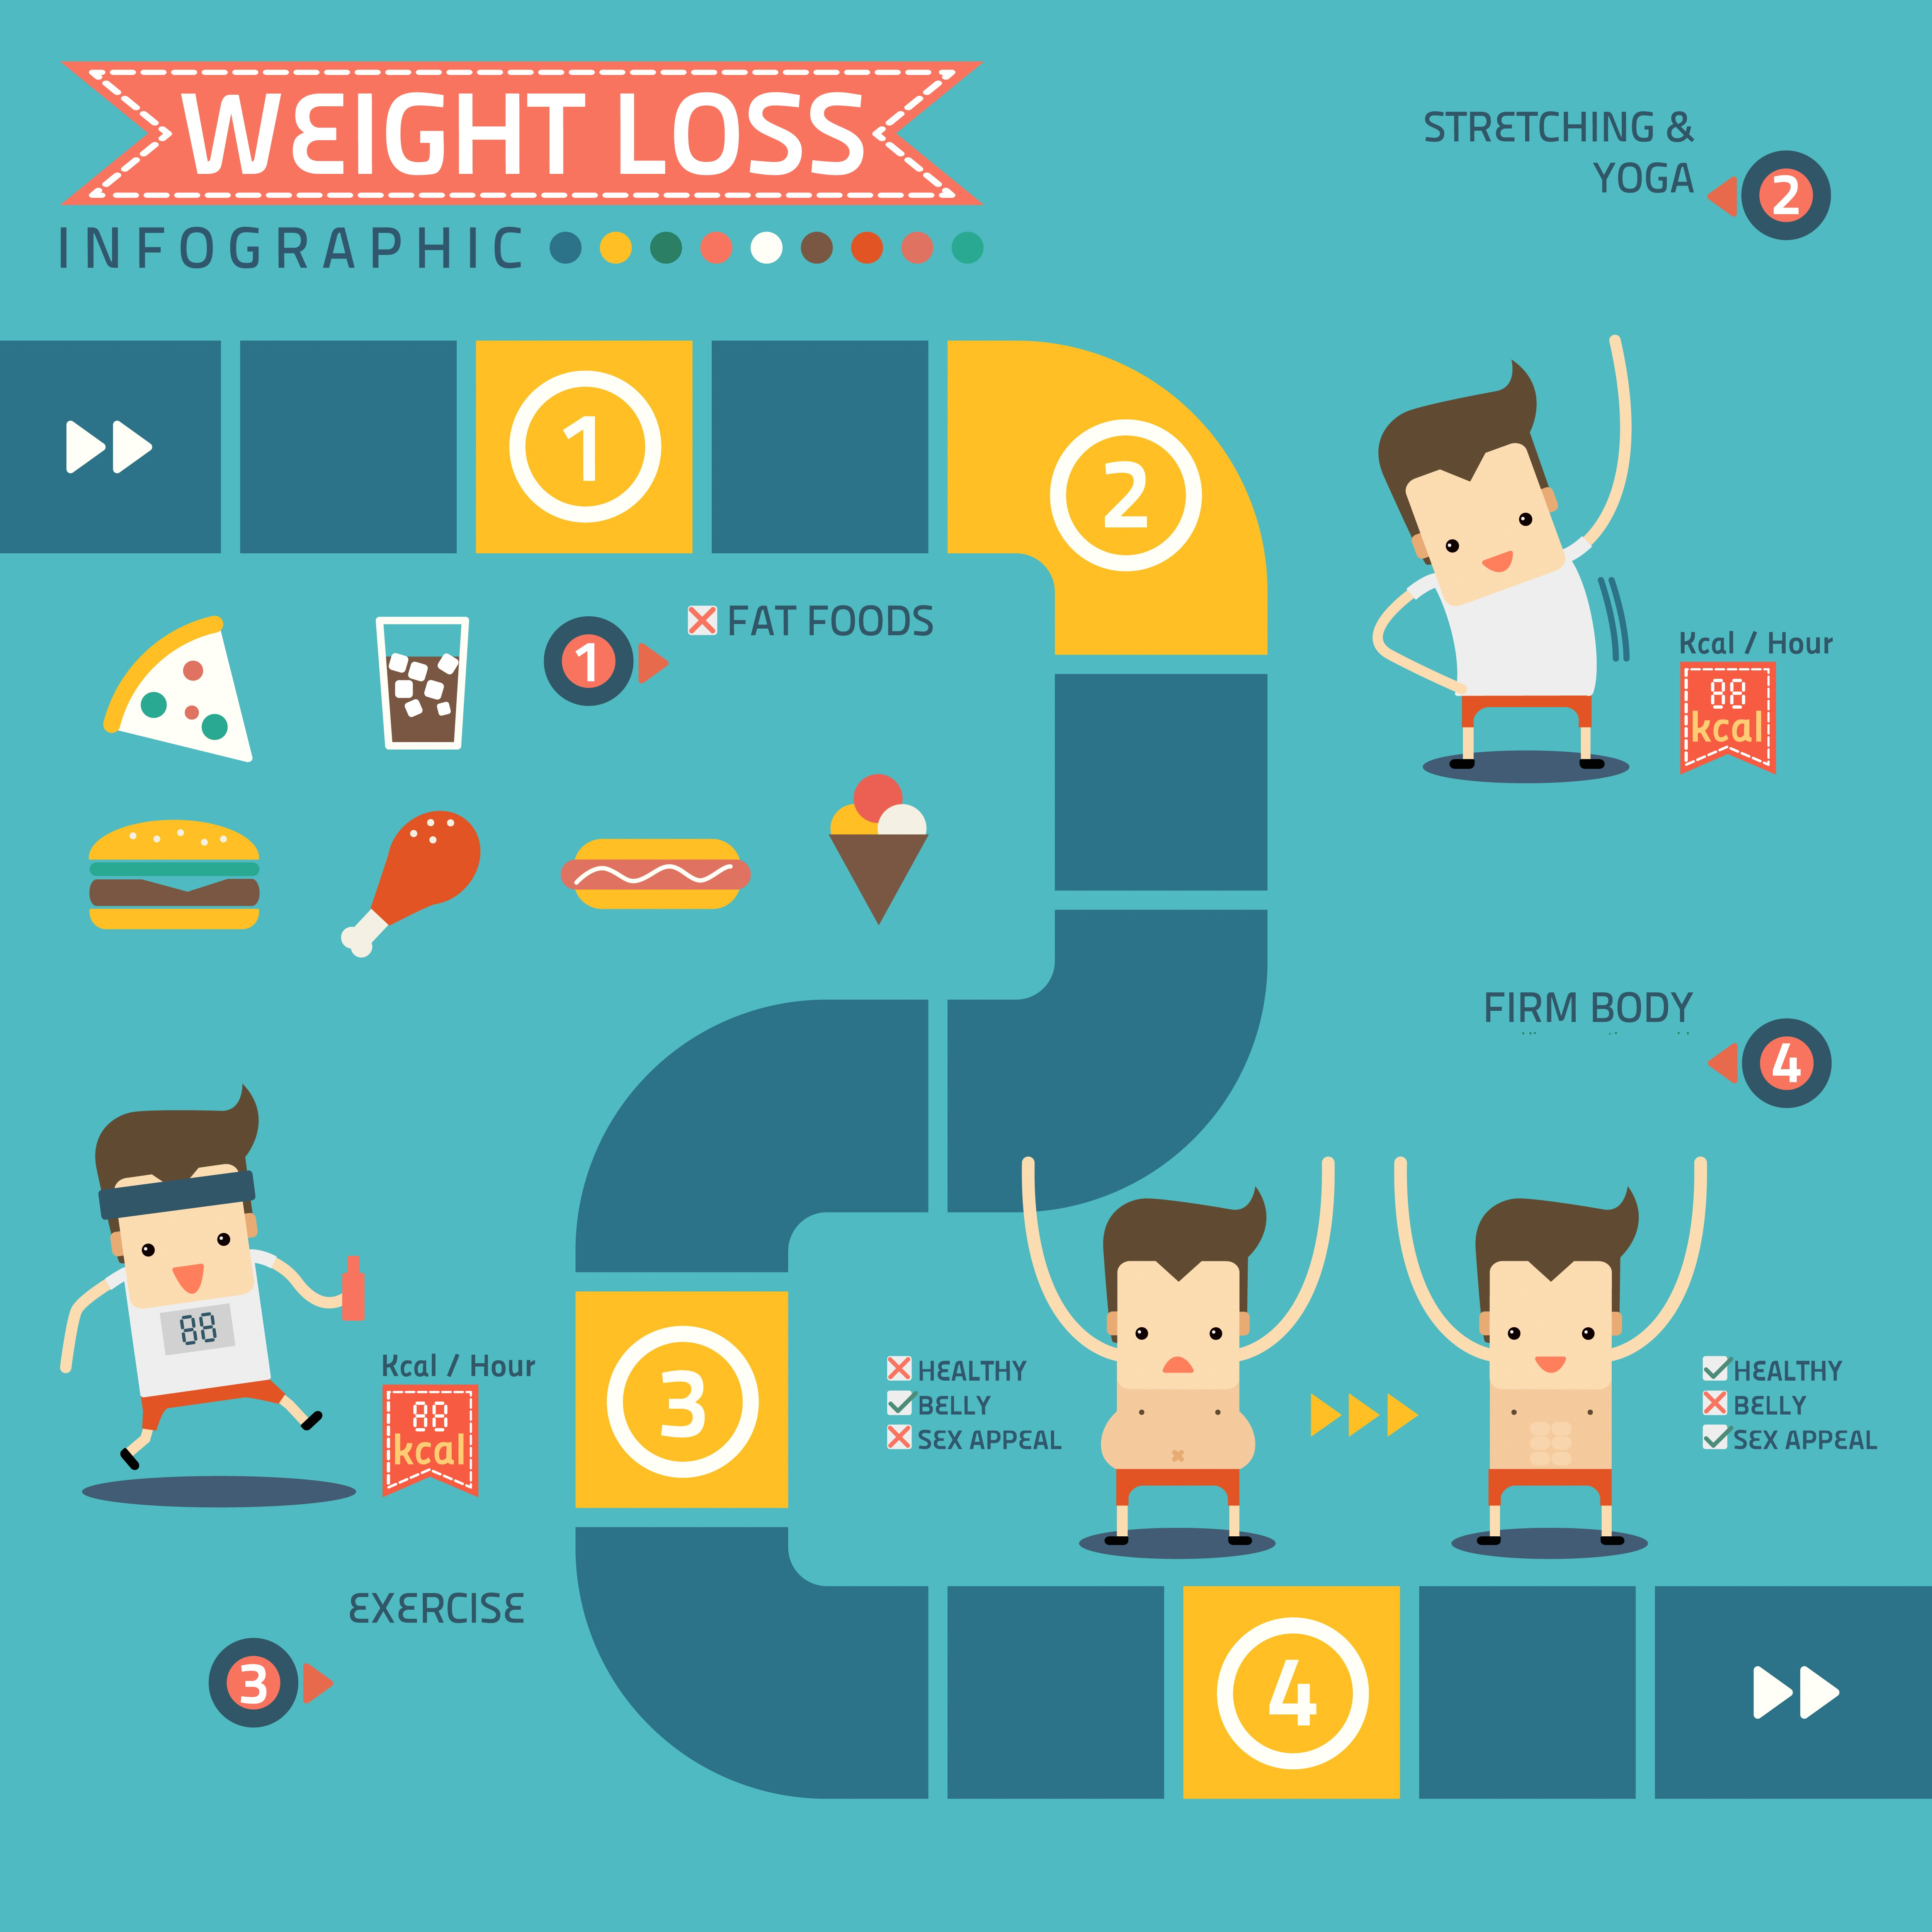 How to lose weight properly in few steps - infographic